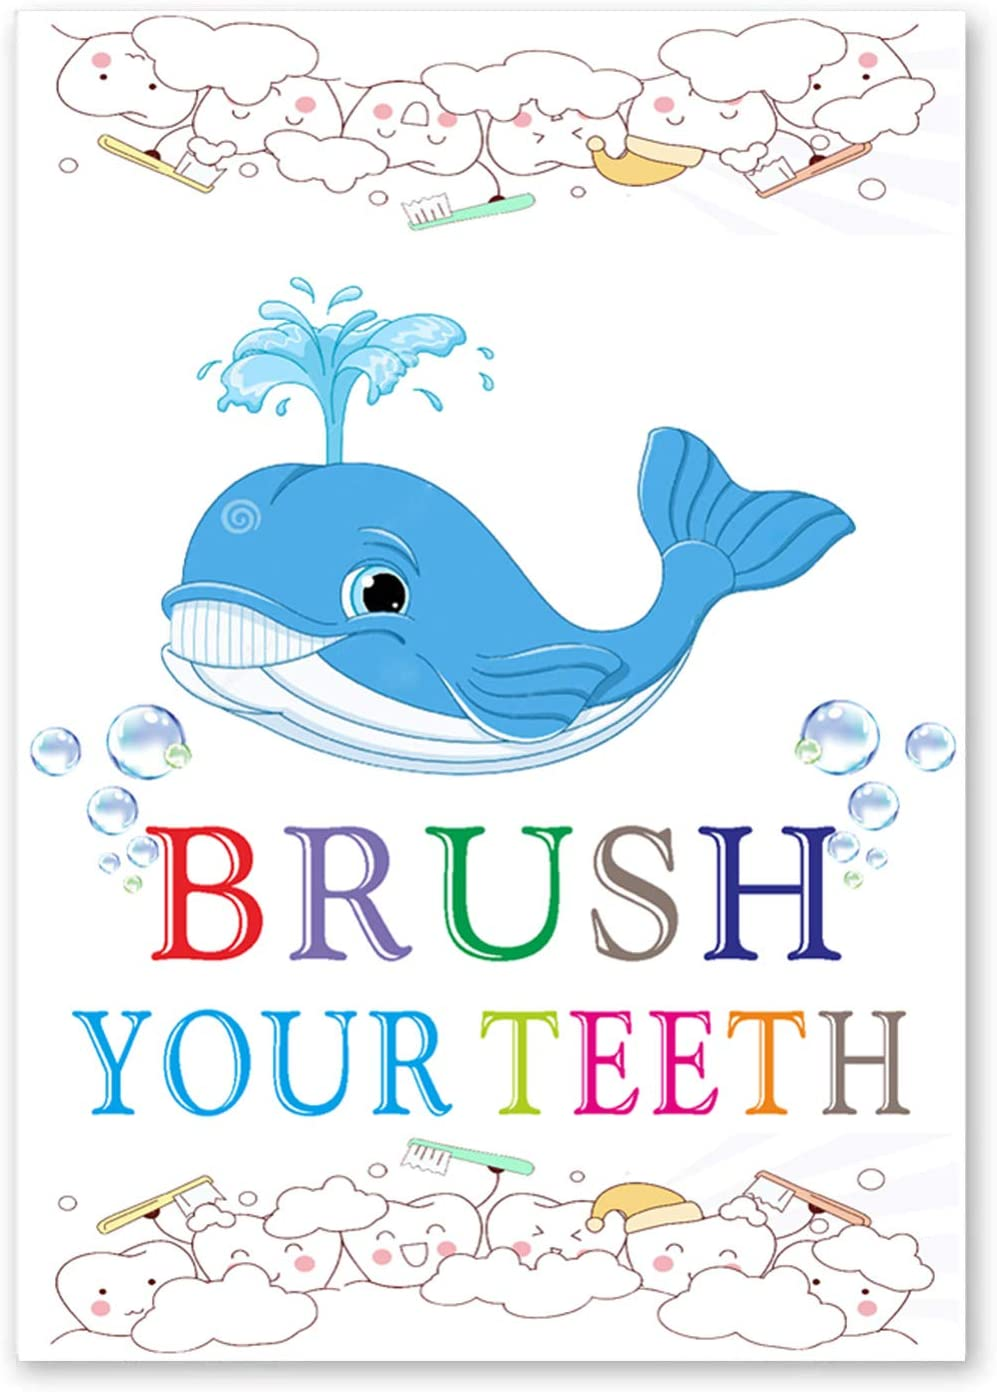 """Funny Bathroom Shark Whale Quote Wall Art Prints,Watercolor Poster with Brush Your Teeth,Bathroom Sign Canvas Wall Art for Washroom Home Decor.(Unframed,16""""X24""""inches)"""